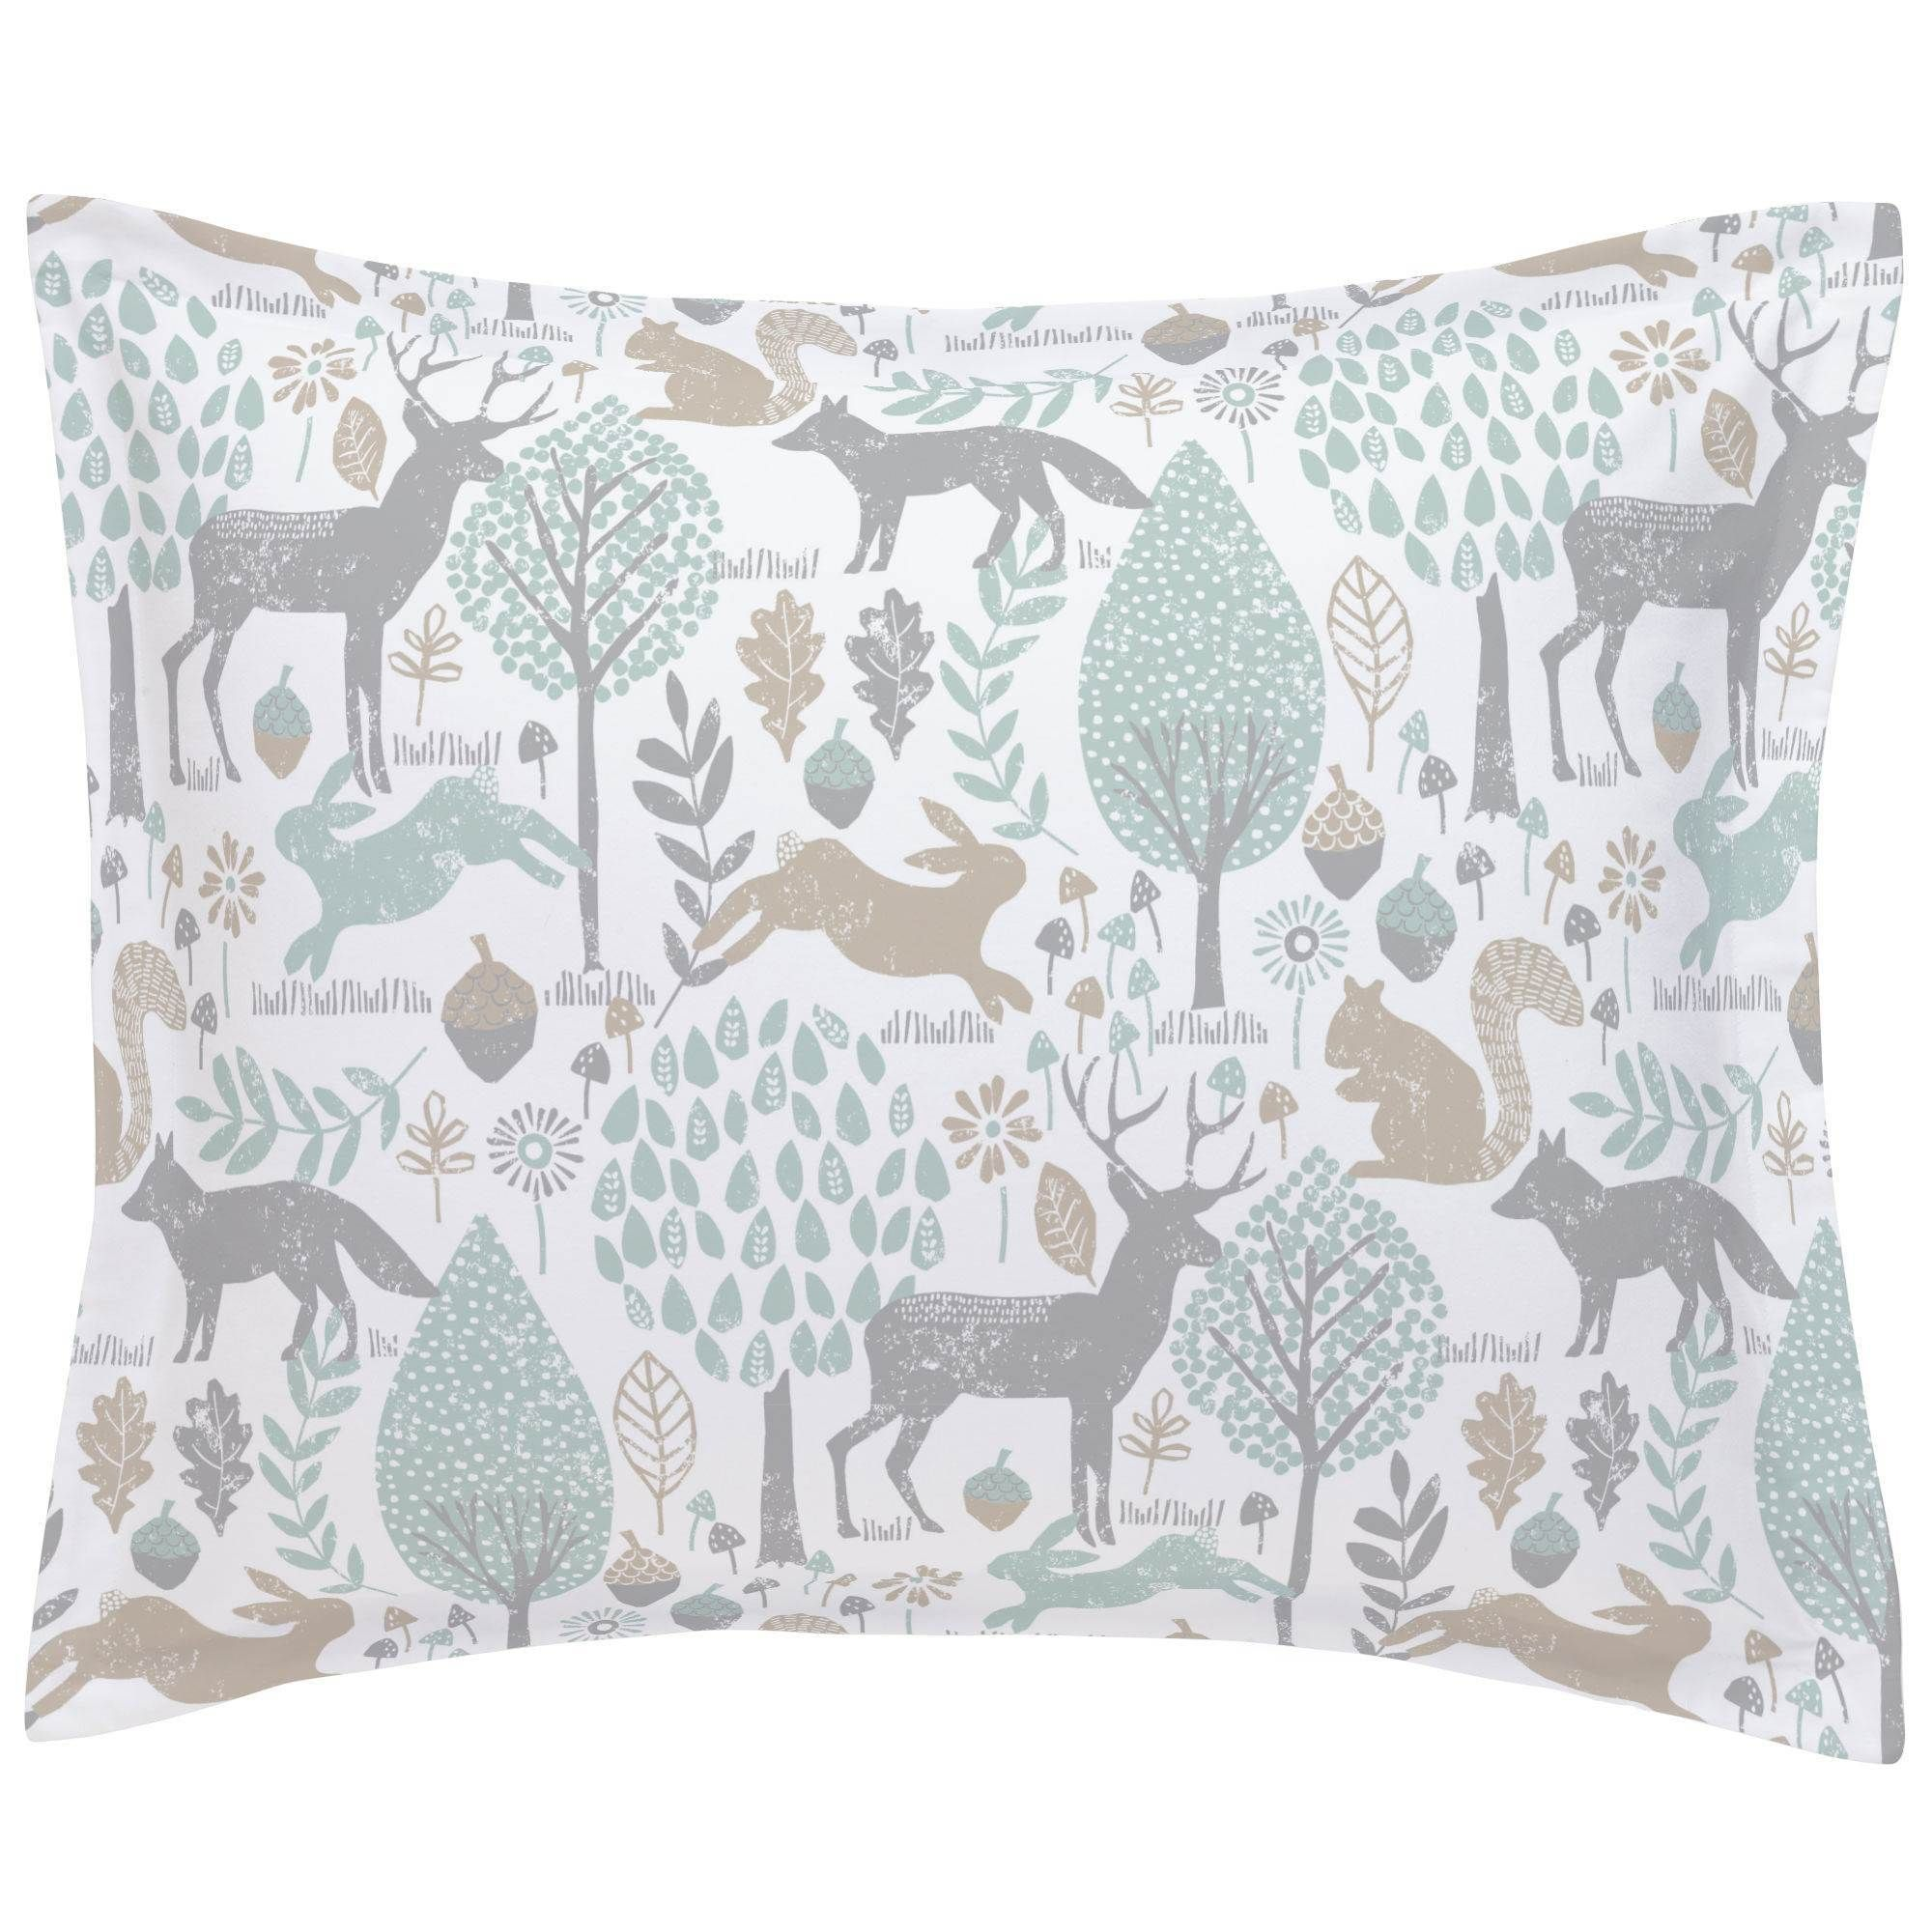 Gray and Taupe Woodland Animals Pillow Sham